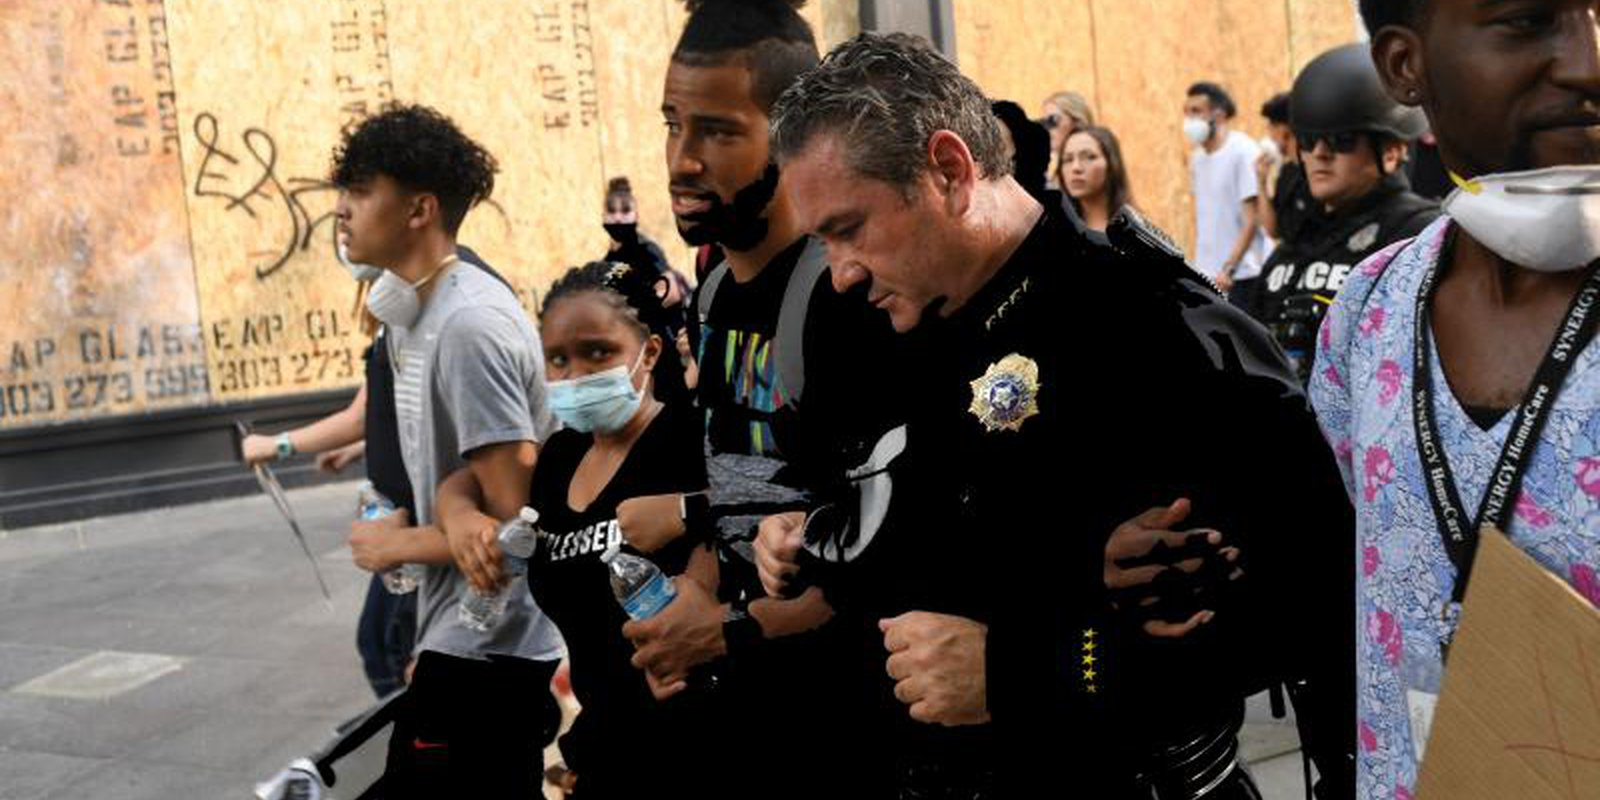 Denver police chief Paul Pazen marches arm and arm with peaceful protesters during a protest over the death of George Floyd. Photo by RJ Sangosti/MediaNews Group/The Denver Post via Getty Images.